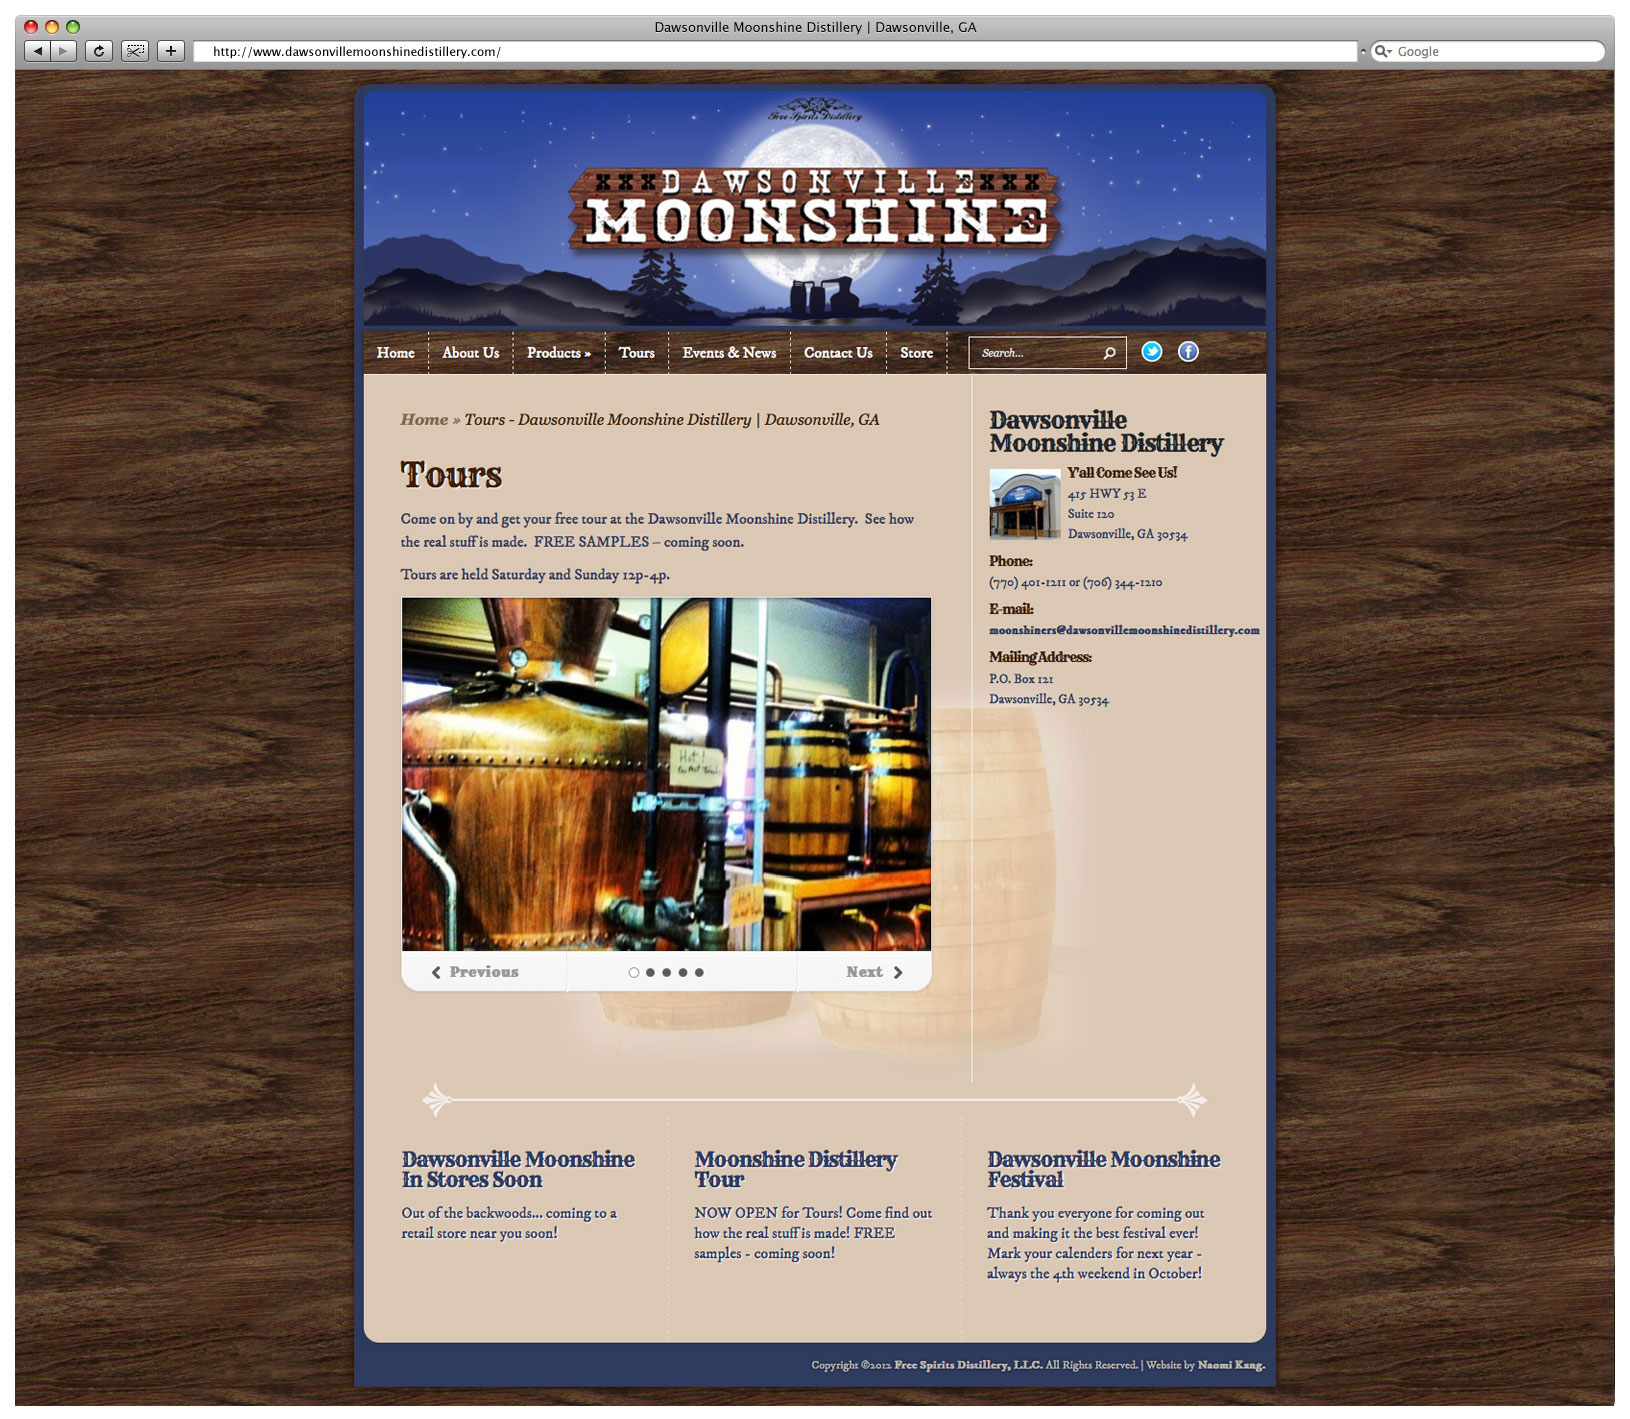 Dawsonville Moonshine Distillery Website – Tours Page